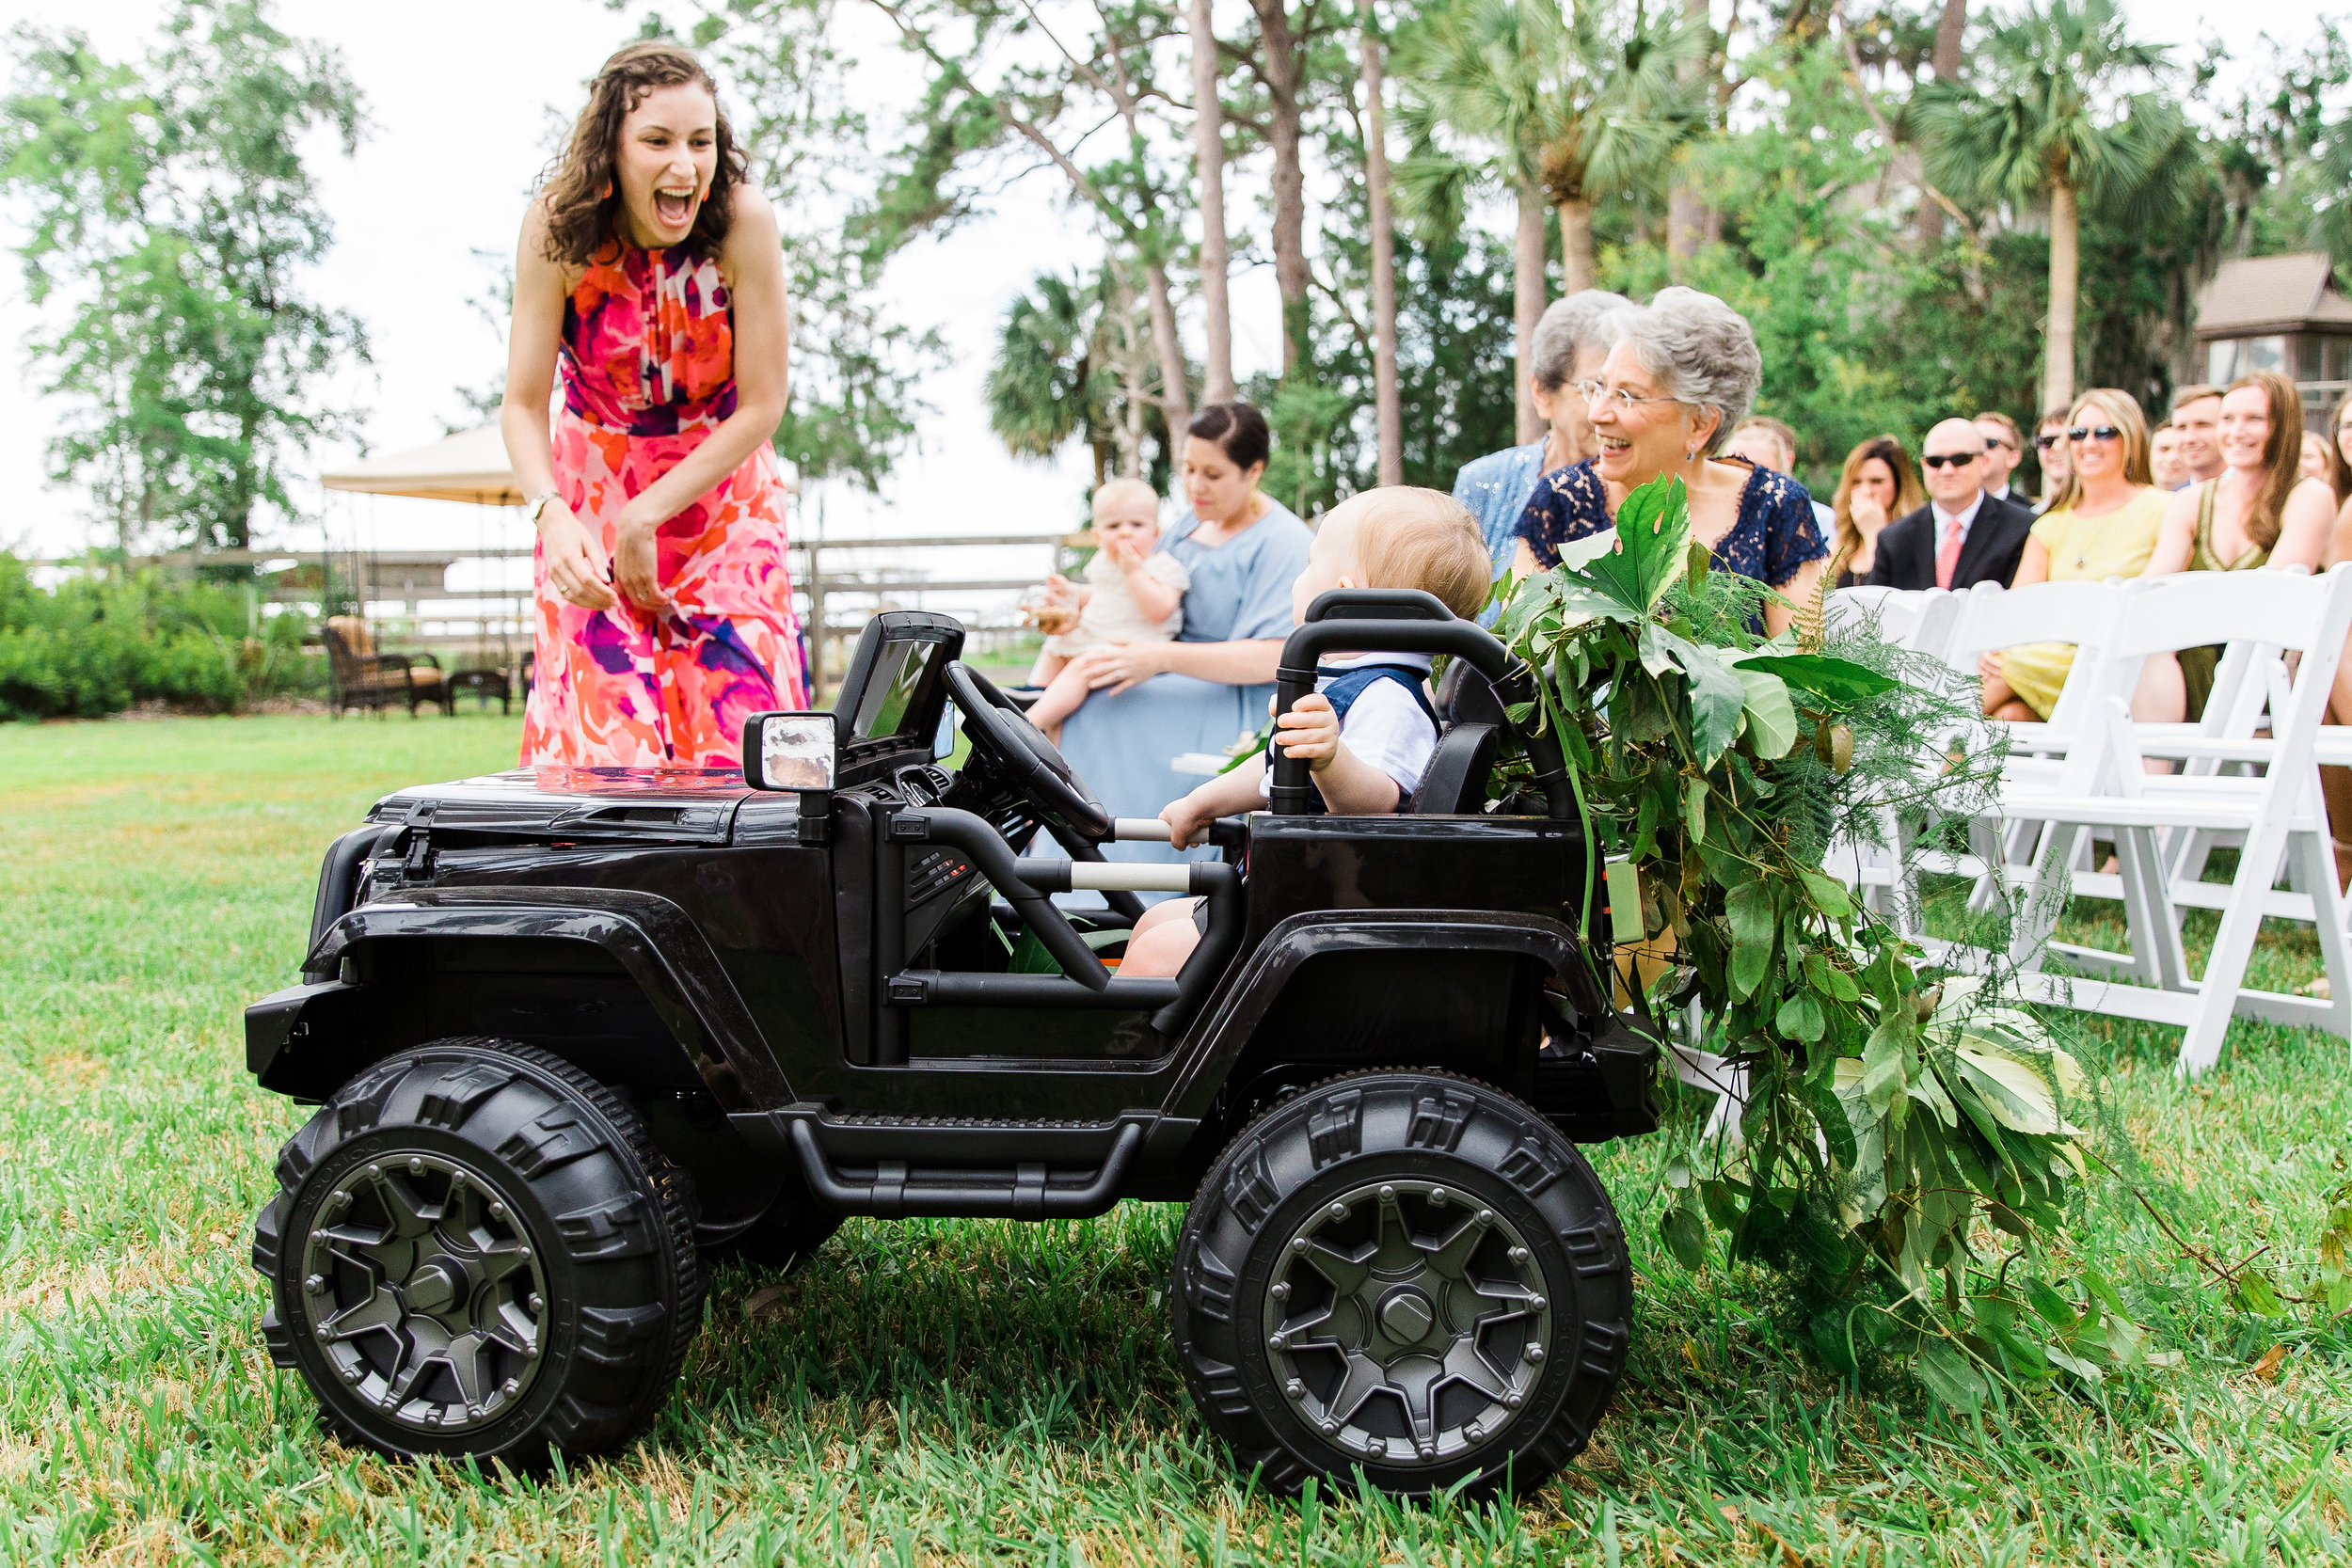 savannah-bridal-shop-i-and-b-couple-gretchen-and-alex-fun-and-unique-tropical-wedding-at-captains-bluff-st-simons-island-wedding-marianne-lucille-photography-21.jpg